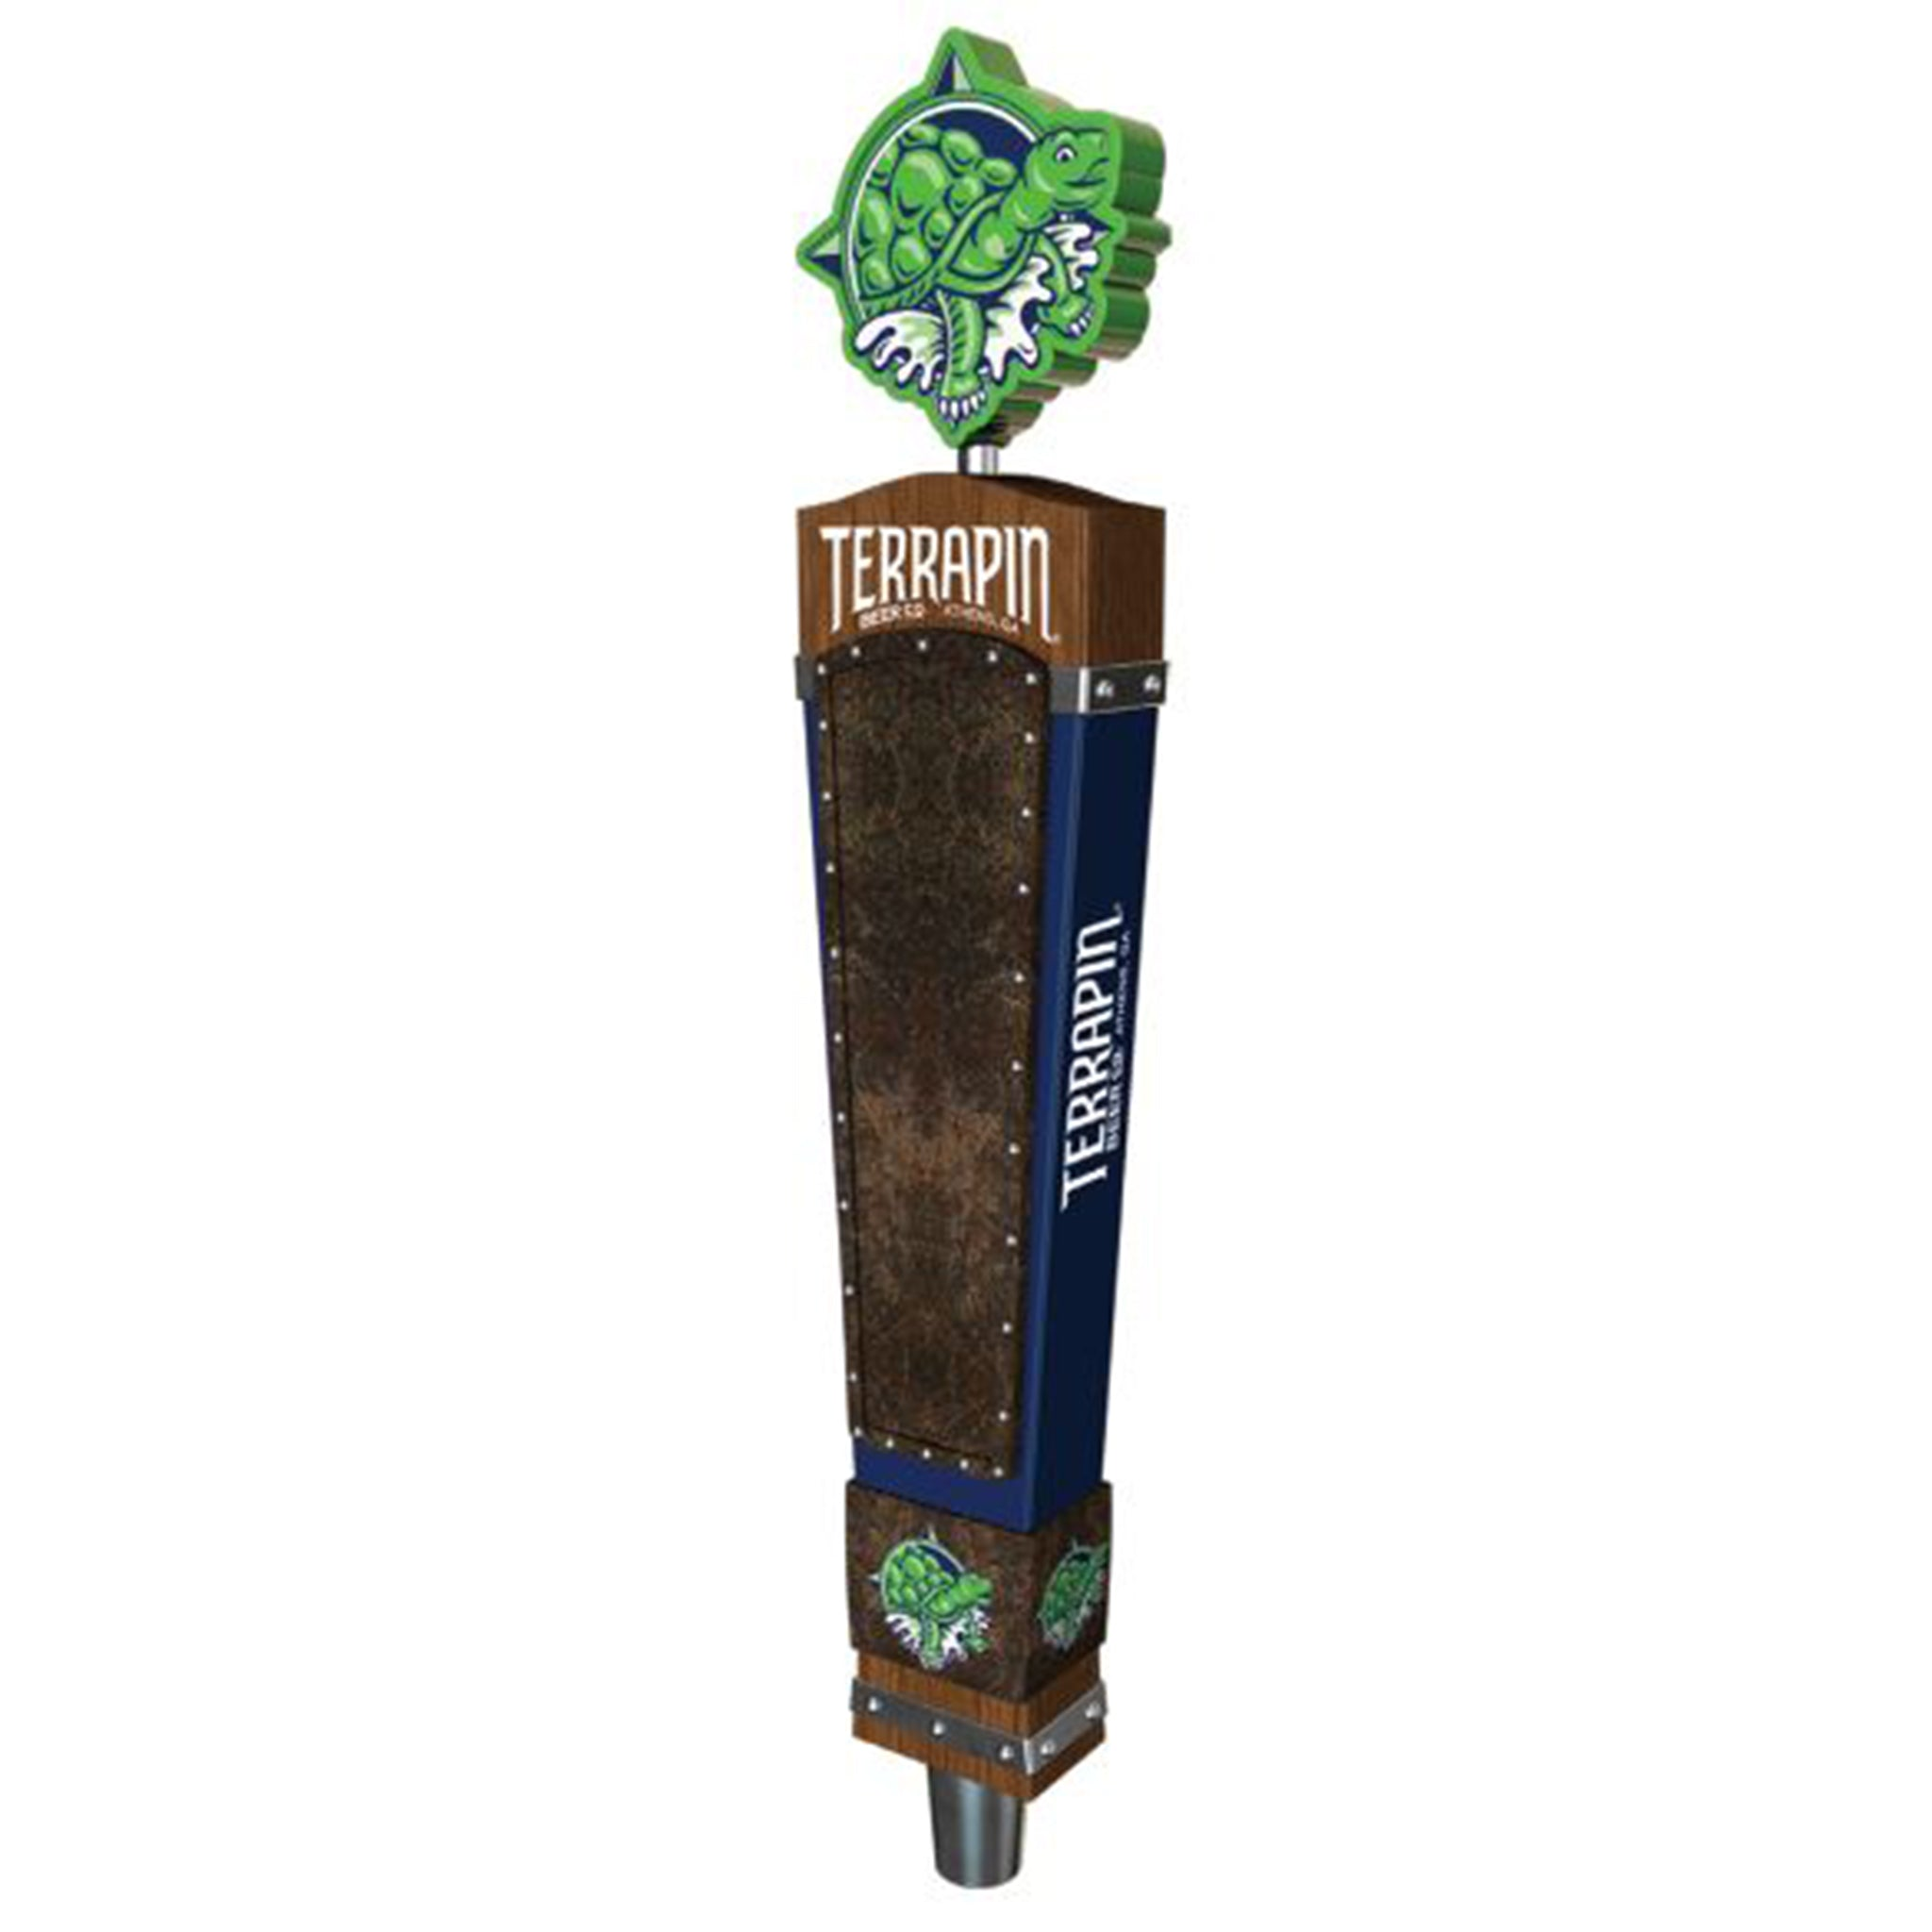 Terrapin Tap Handle